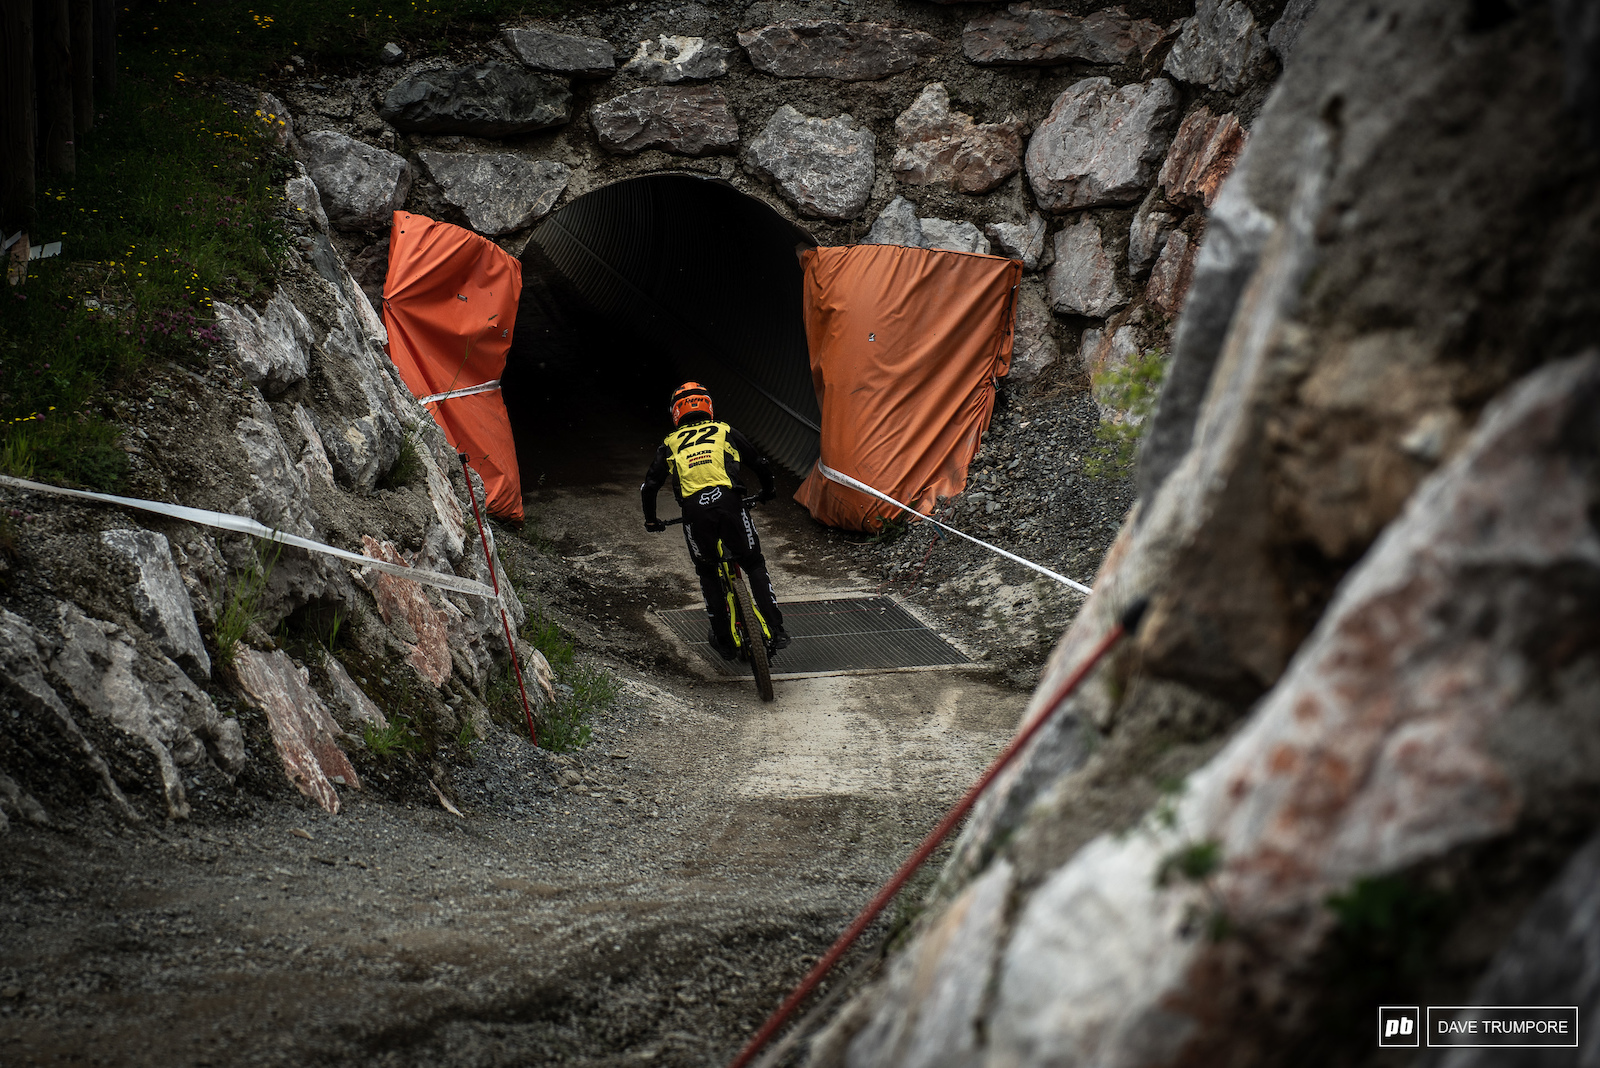 Connor Fearon put his Kona in the top 10 once again in Leogang.